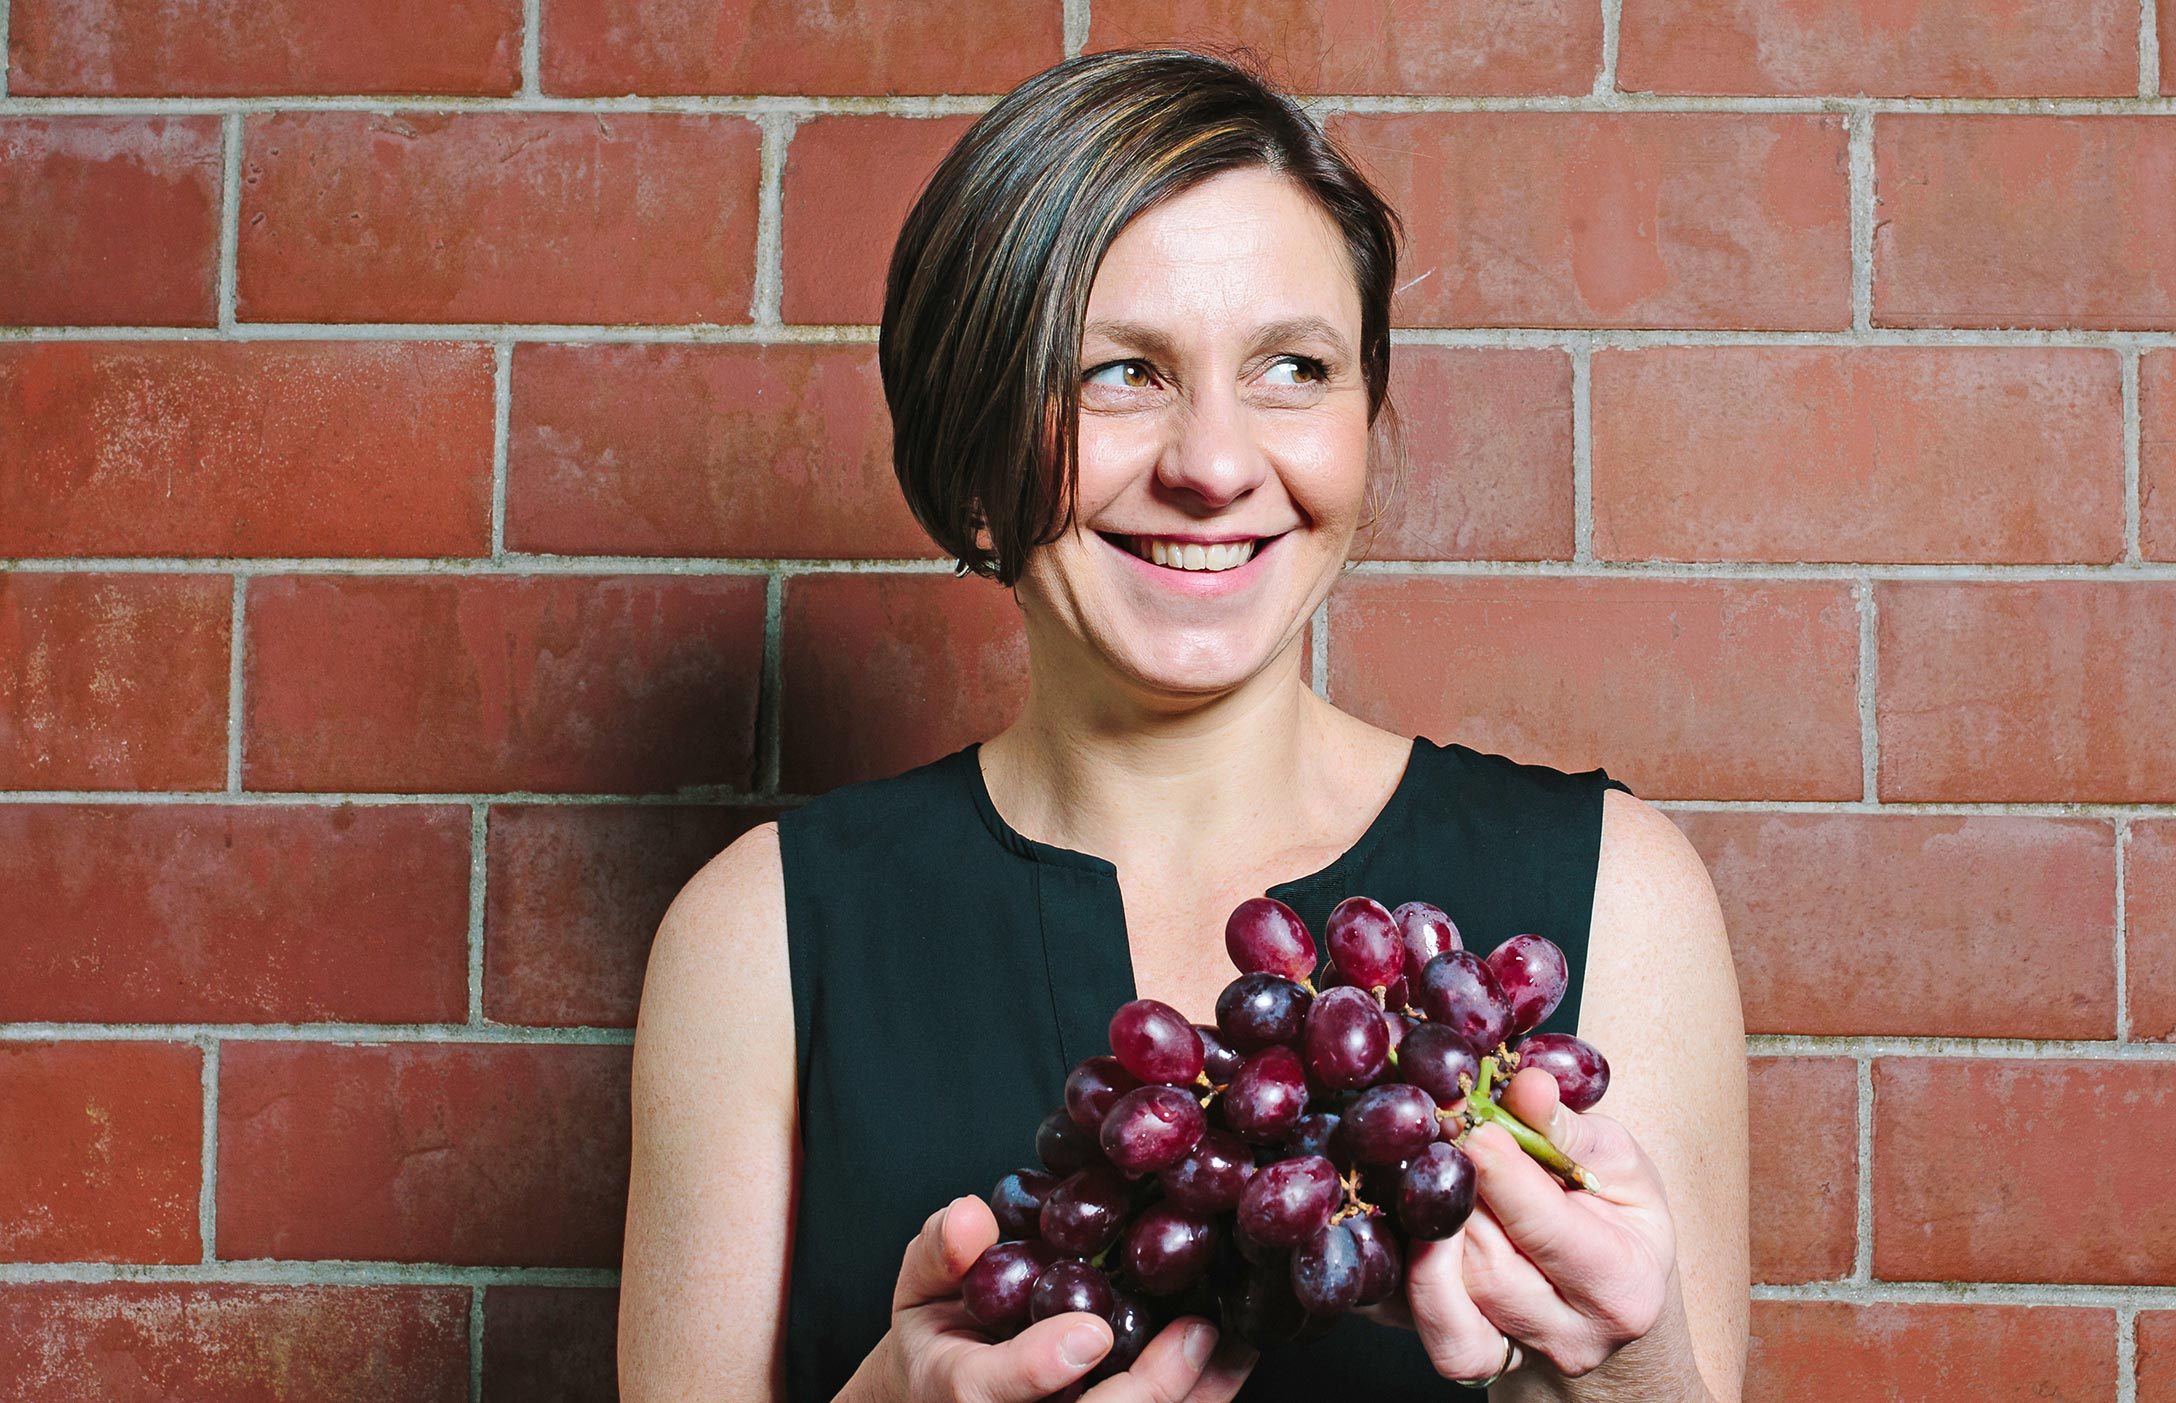 Elsa Petit stands against a brick wall, holding luscious purple grapes and looking away from the camera